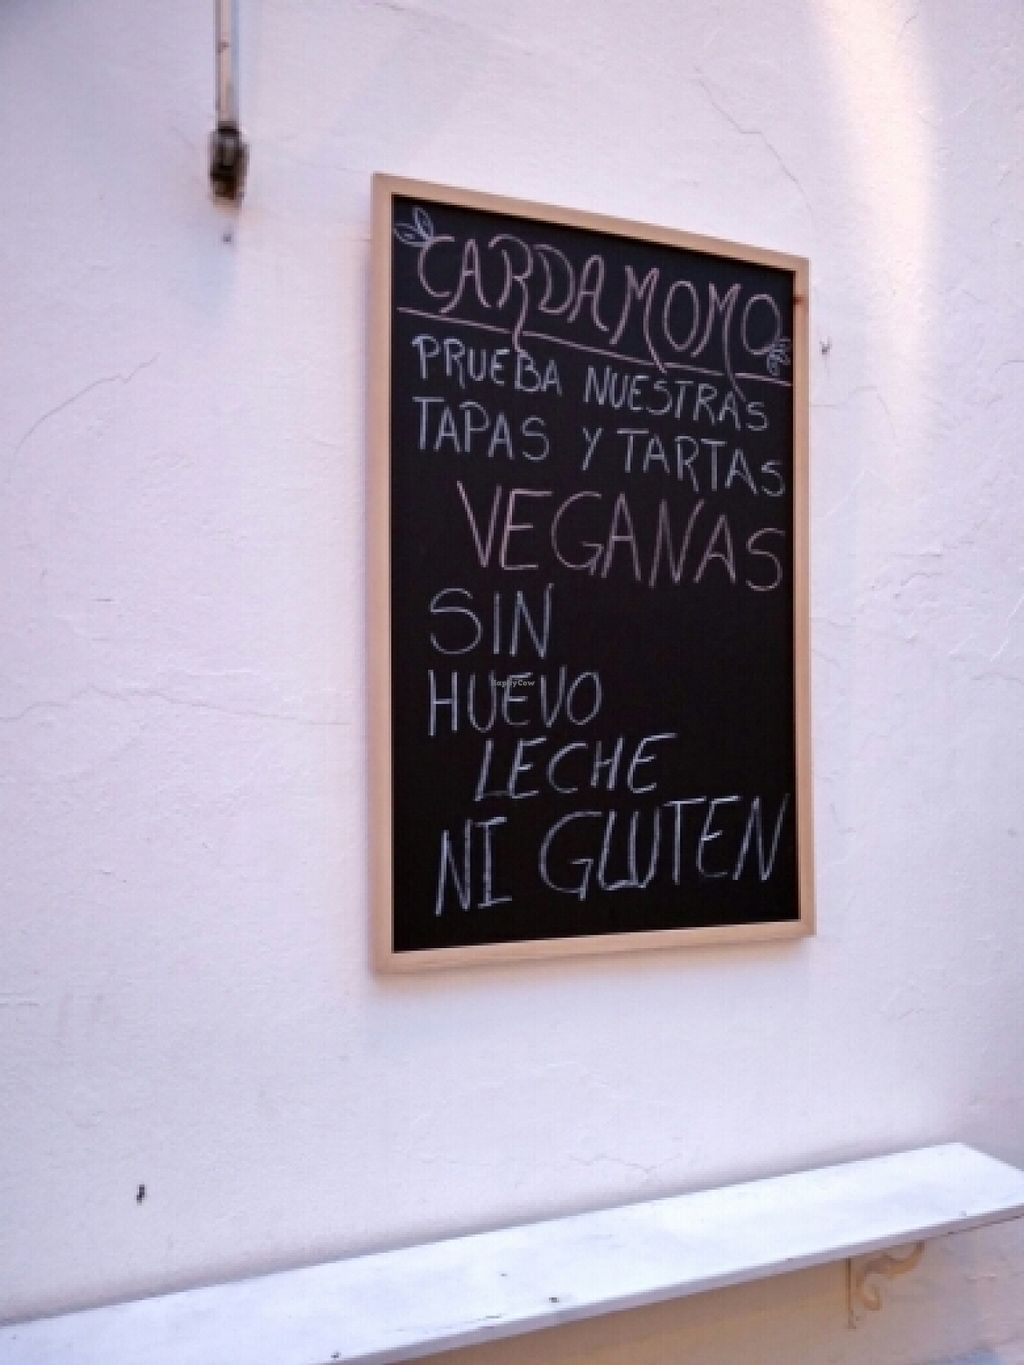 """Photo of CLOSED: Cardamomo  by <a href=""""/members/profile/Harp"""">Harp</a> <br/>Bar Cardamomo <br/> January 10, 2016  - <a href='/contact/abuse/image/67510/131888'>Report</a>"""